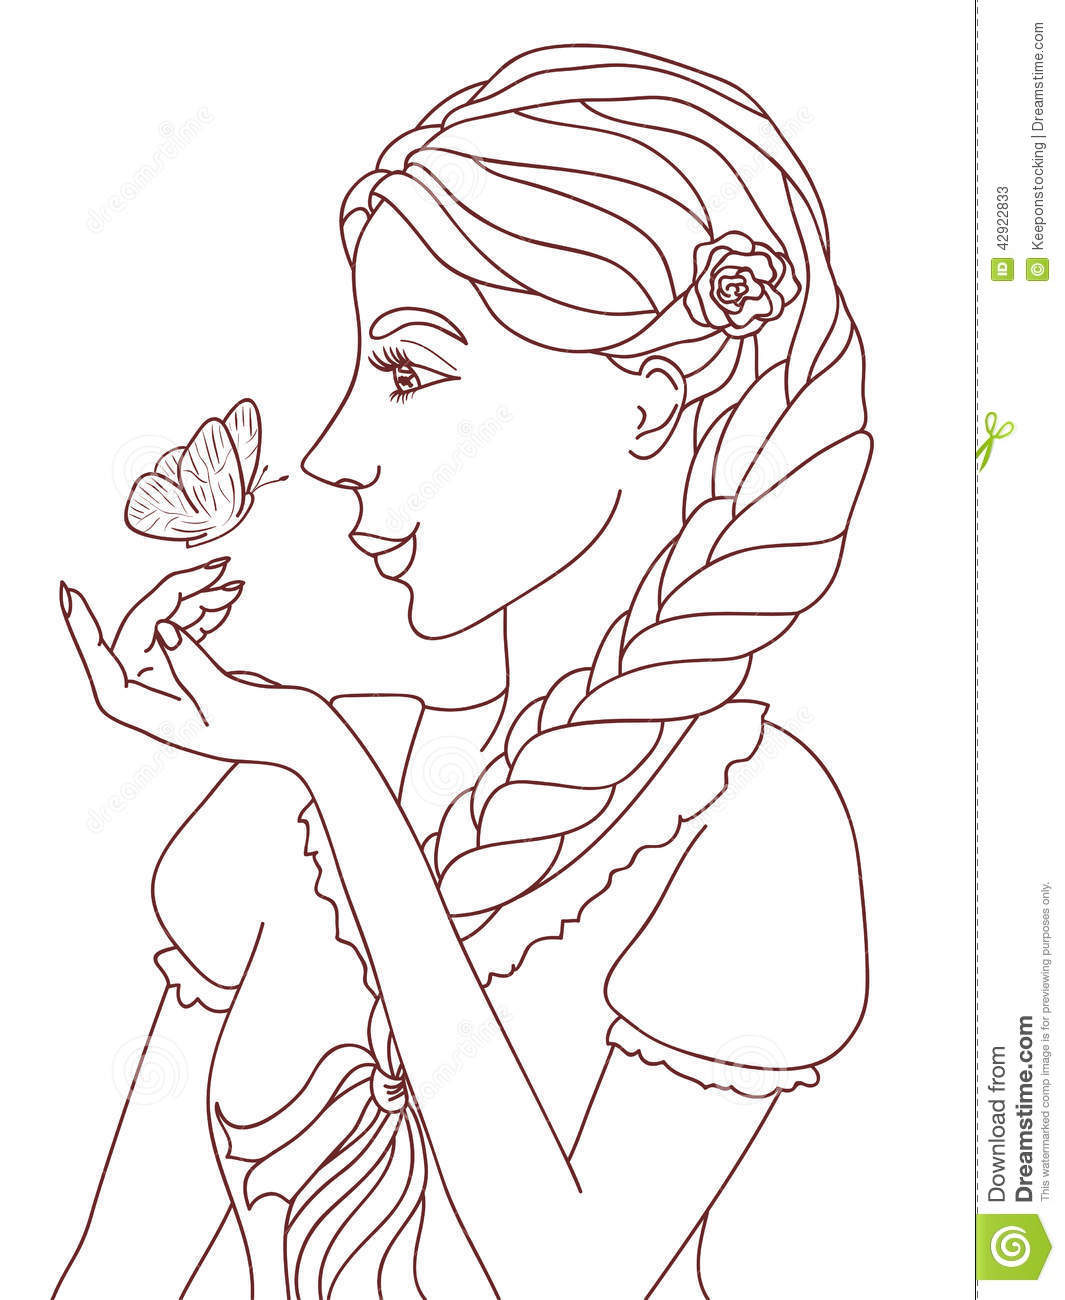 Colouring in pages for girls butterflies - Background Braided Butterfly Colouring Girl